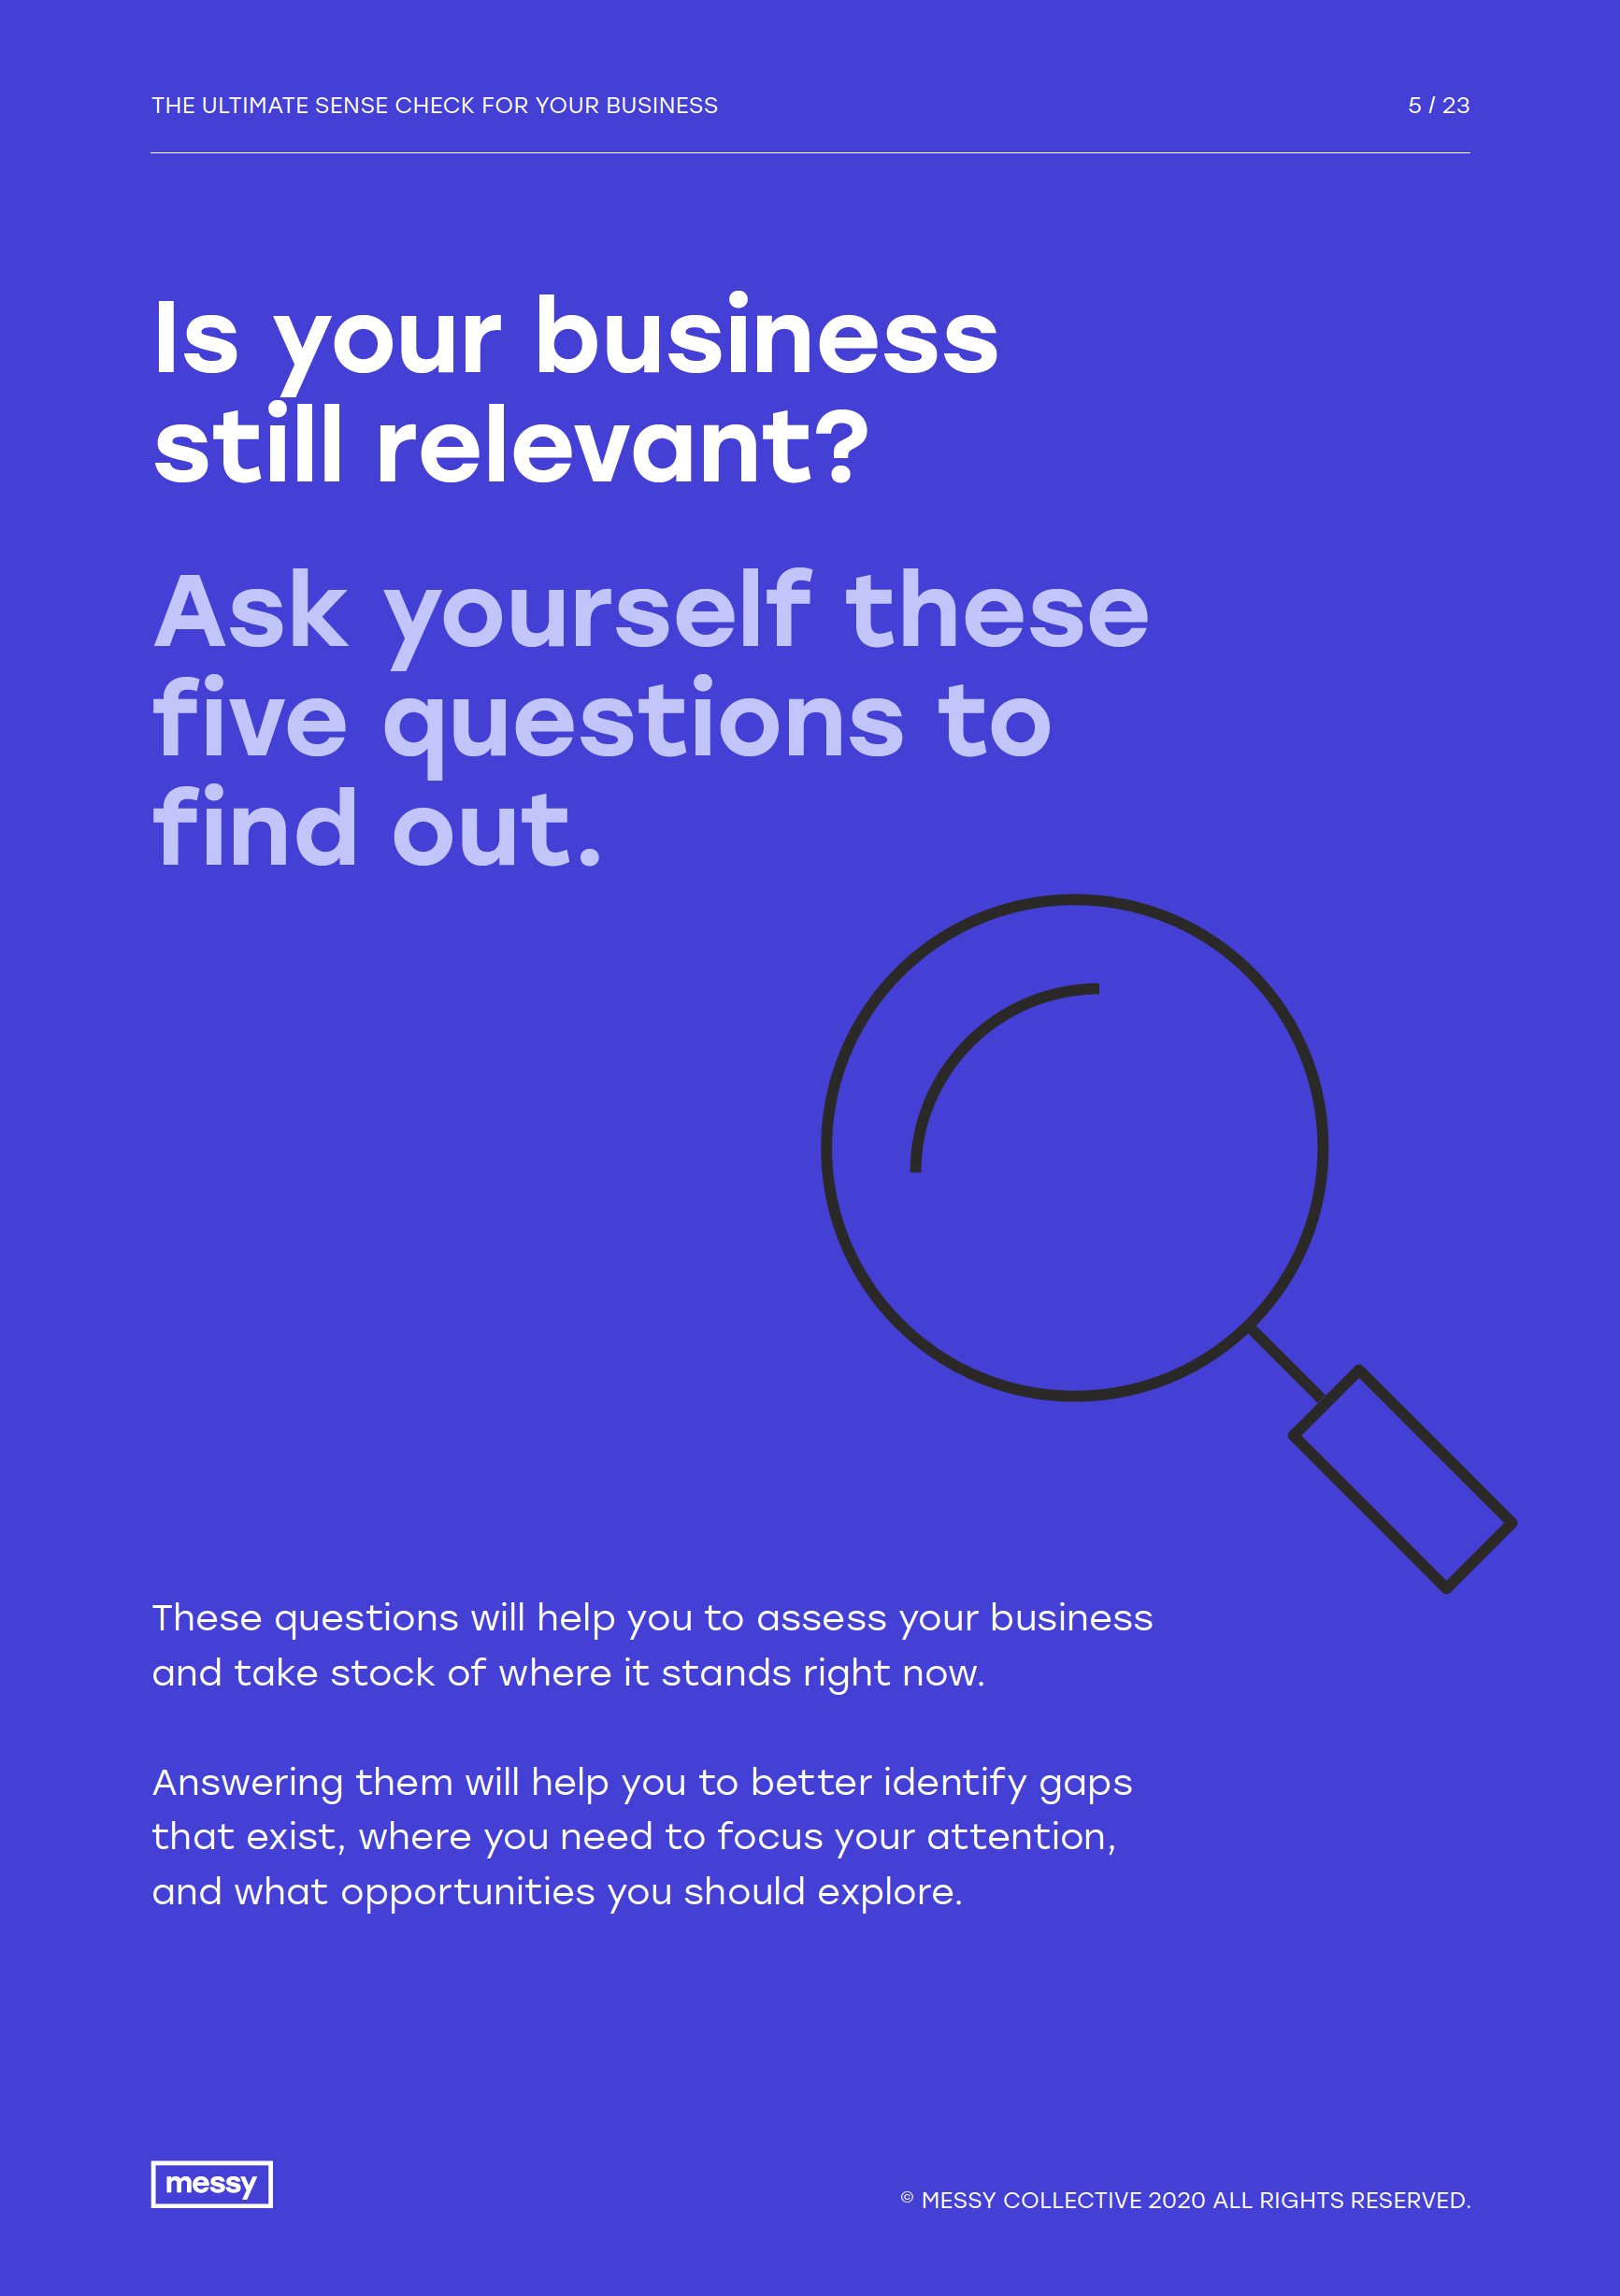 The Ultimate Sense Check for your Business guide - page 5